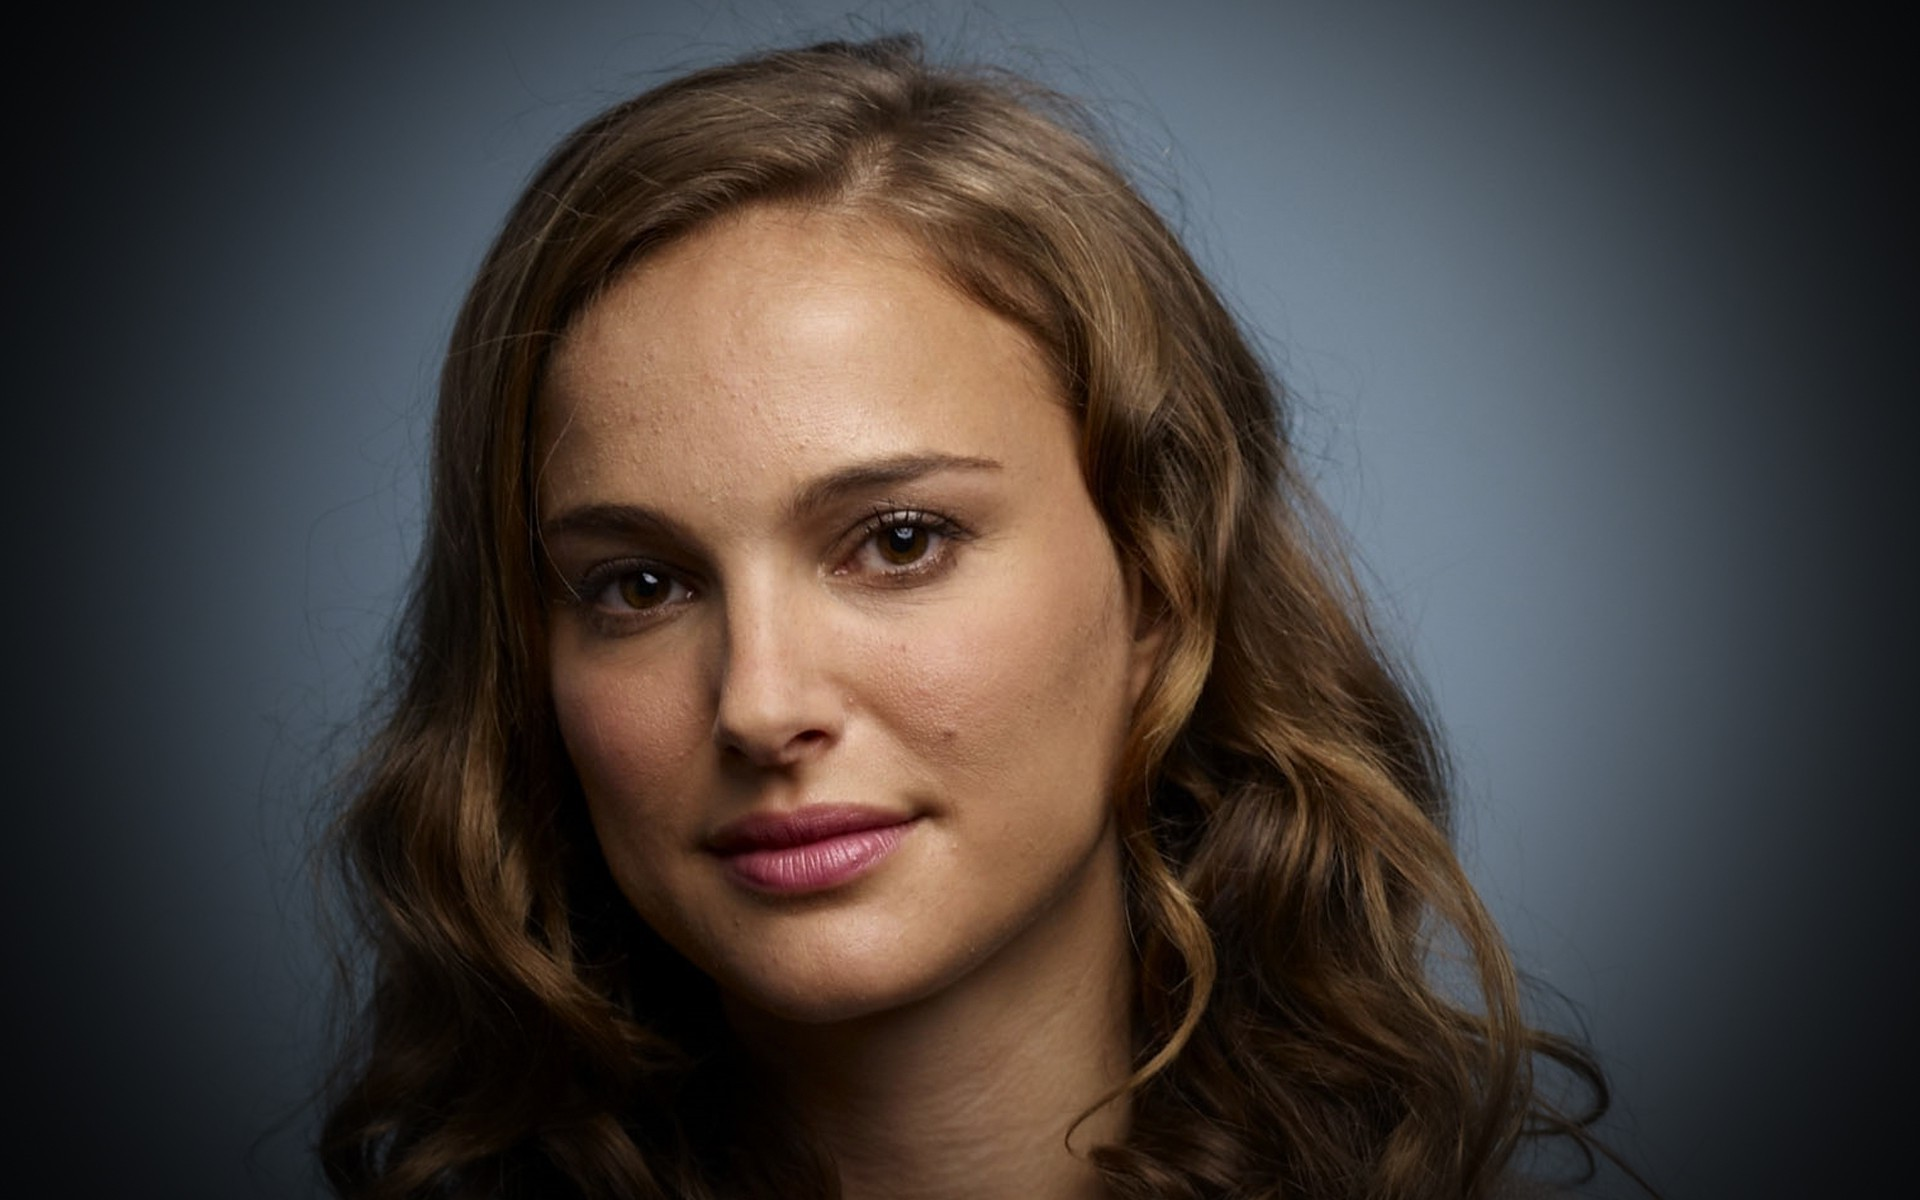 Natalie Portman Picture 20 HD Screensavers